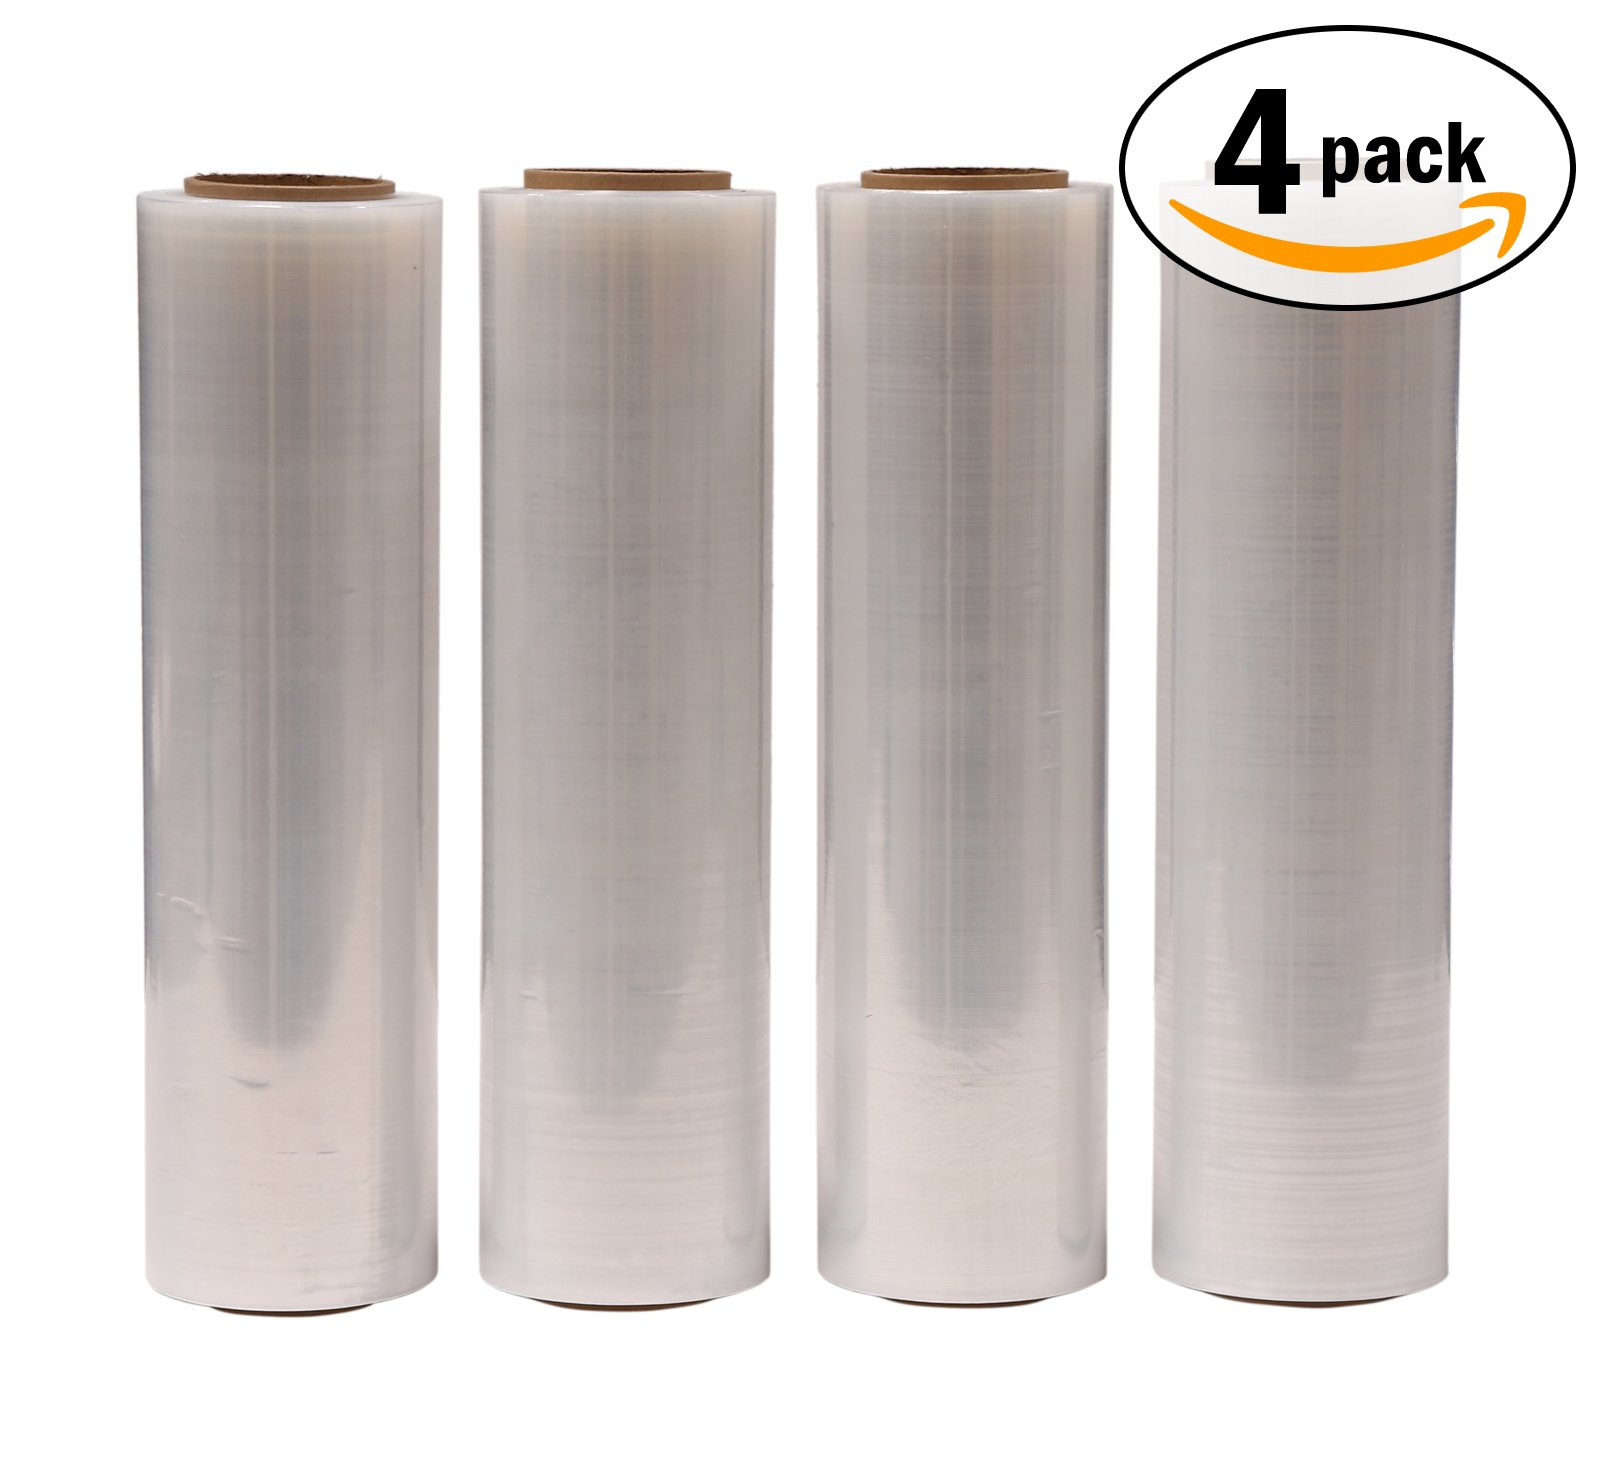 AMERIQUE Shrink Wrap 4 Pack (4000FTX18'', 25.2 LBS Total): Stretch Film Plastic Wrap - Industrial Strength Hand Stretch Wrap, 18''x 1,000 FT Per Roll, 80 Gauge Shrink Film / Pallet Wrap - Clear by AMERIQUE